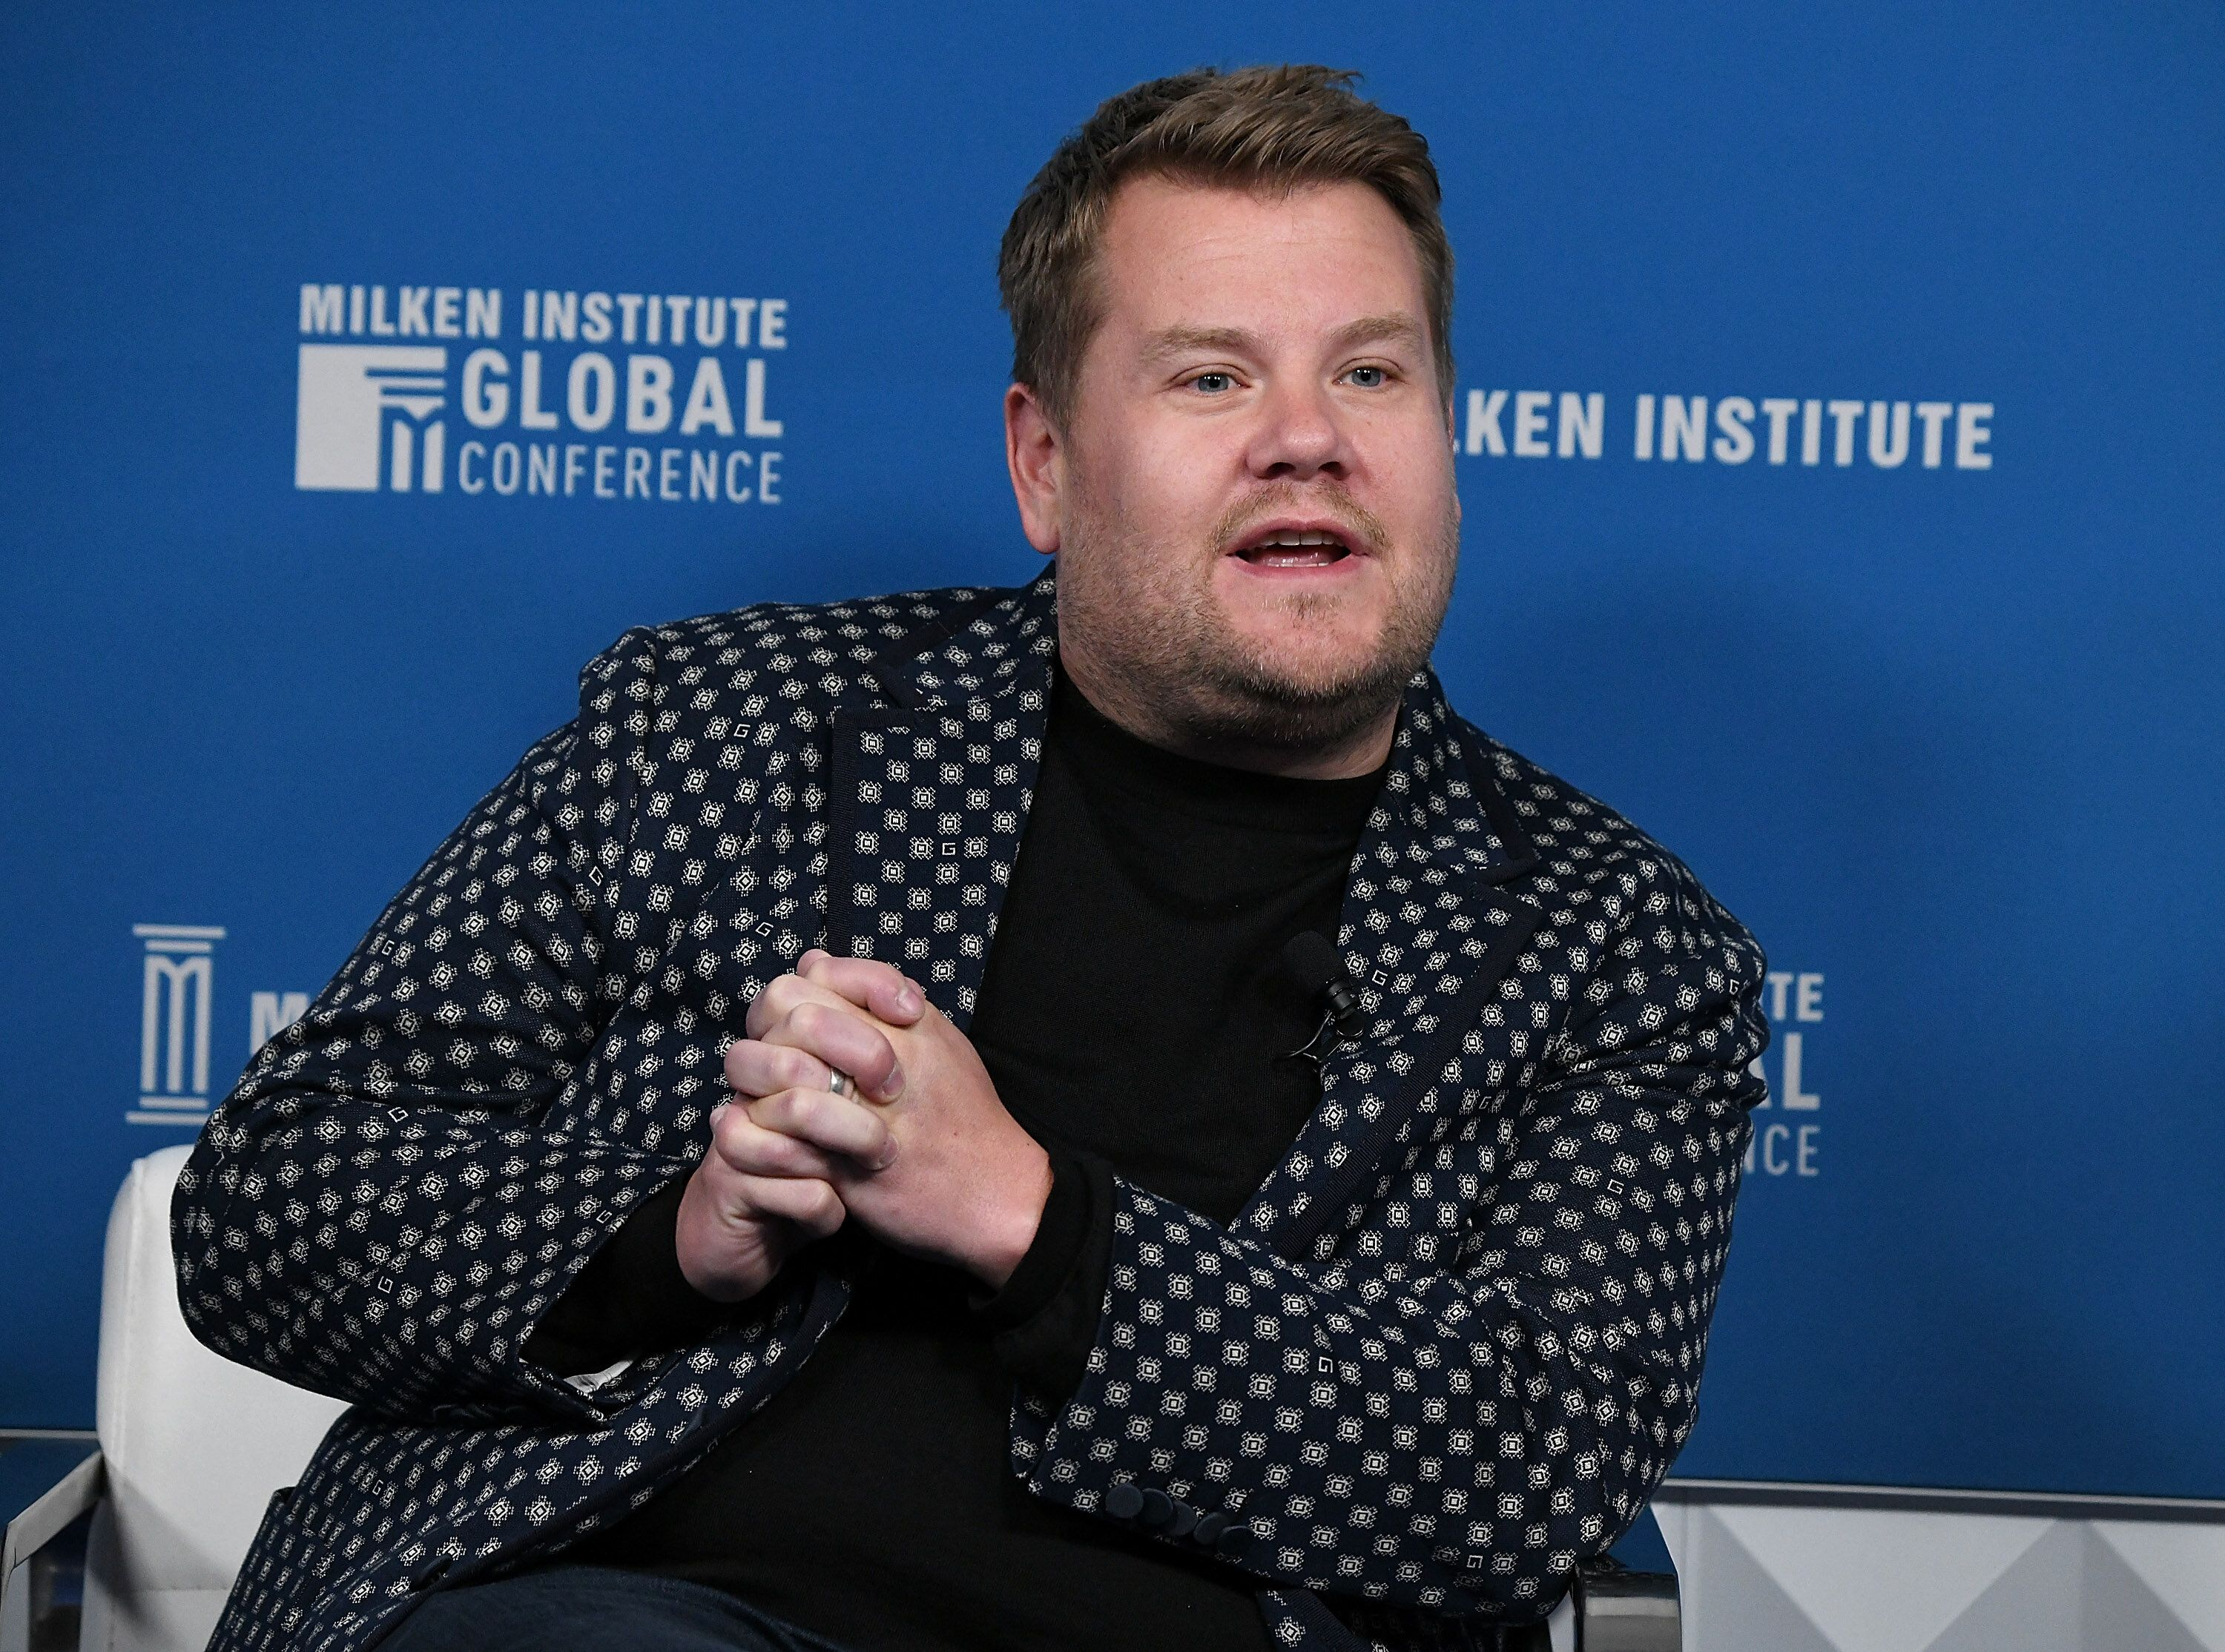 BEVERLY HILLS, CA - APRIL 30:  James Corden, Host, The Late Late Show, participates in a panel discussion during the annual Milken Institute Global Conference at The Beverly Hilton Hotel on April 30, 2019 in Beverly Hills, California.  (Photo by Michael Kovac/Getty Images)